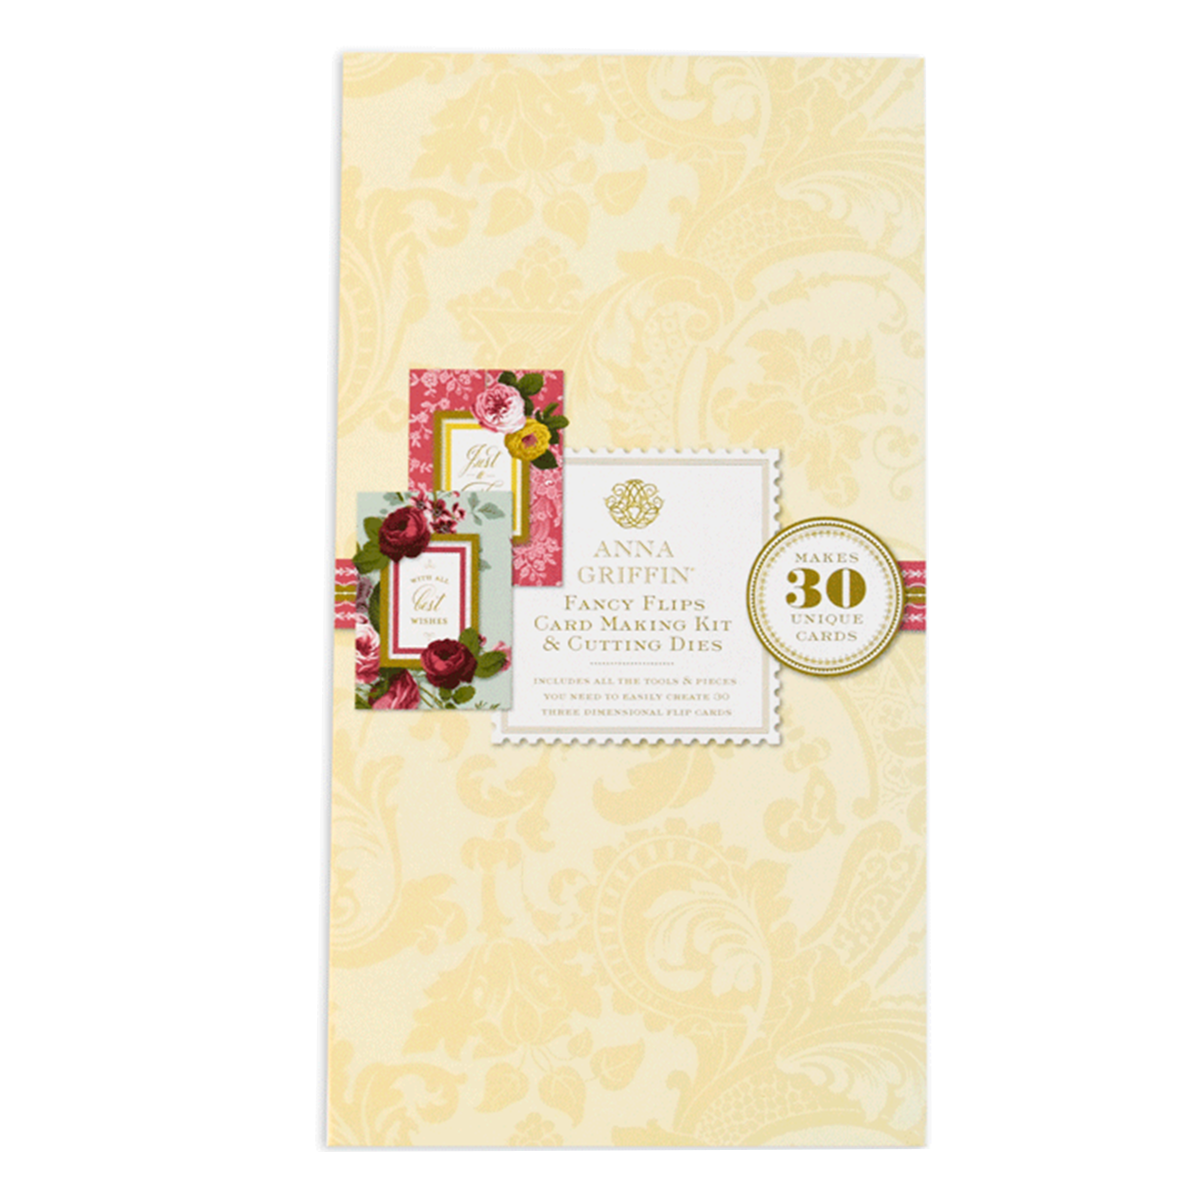 Card kits archives anna griffin fancy flip card kit with dies m4hsunfo